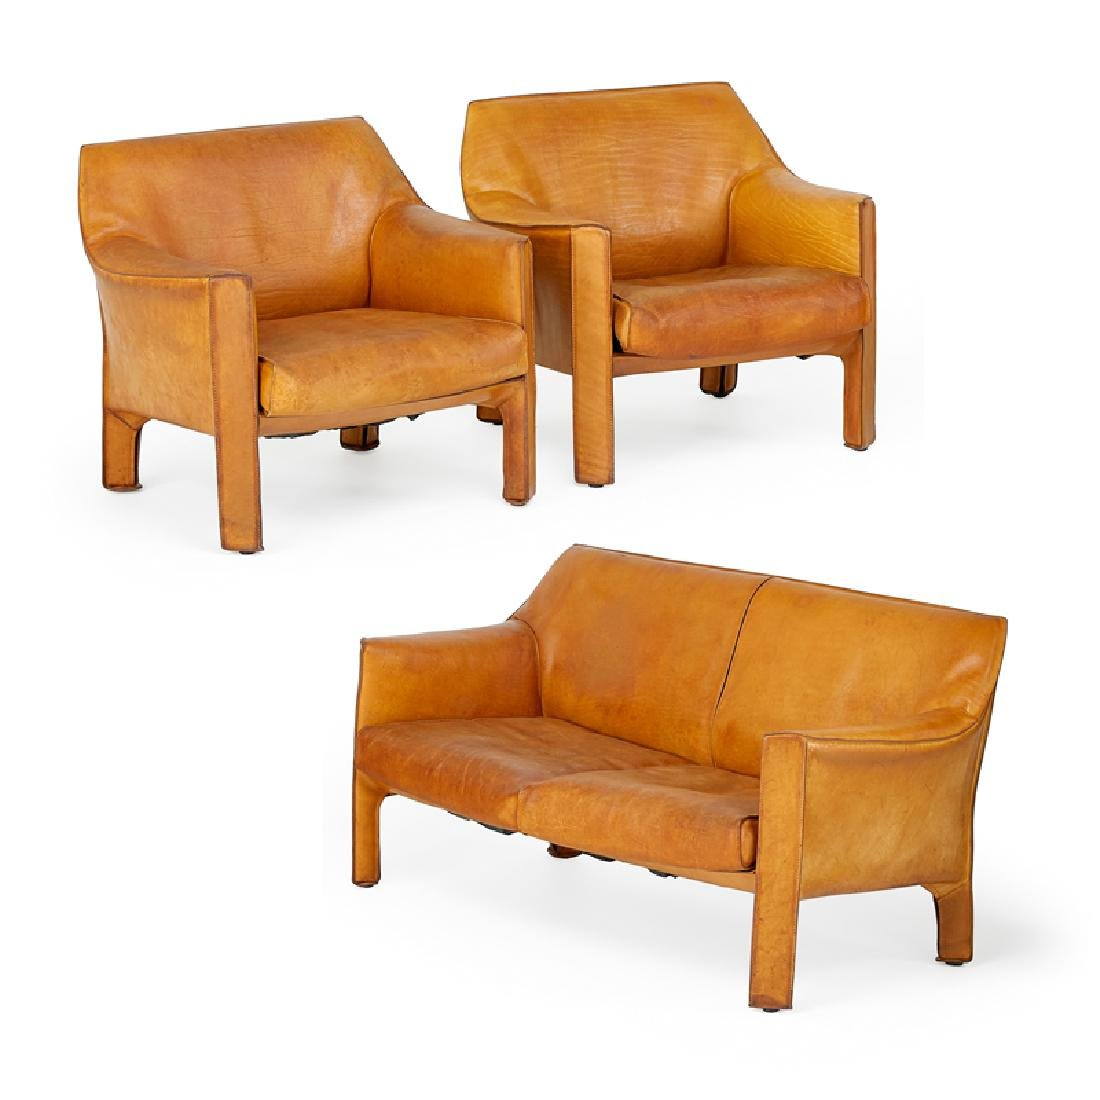 MARIO BELLINI Cab love seat, pr. of lounge chairs